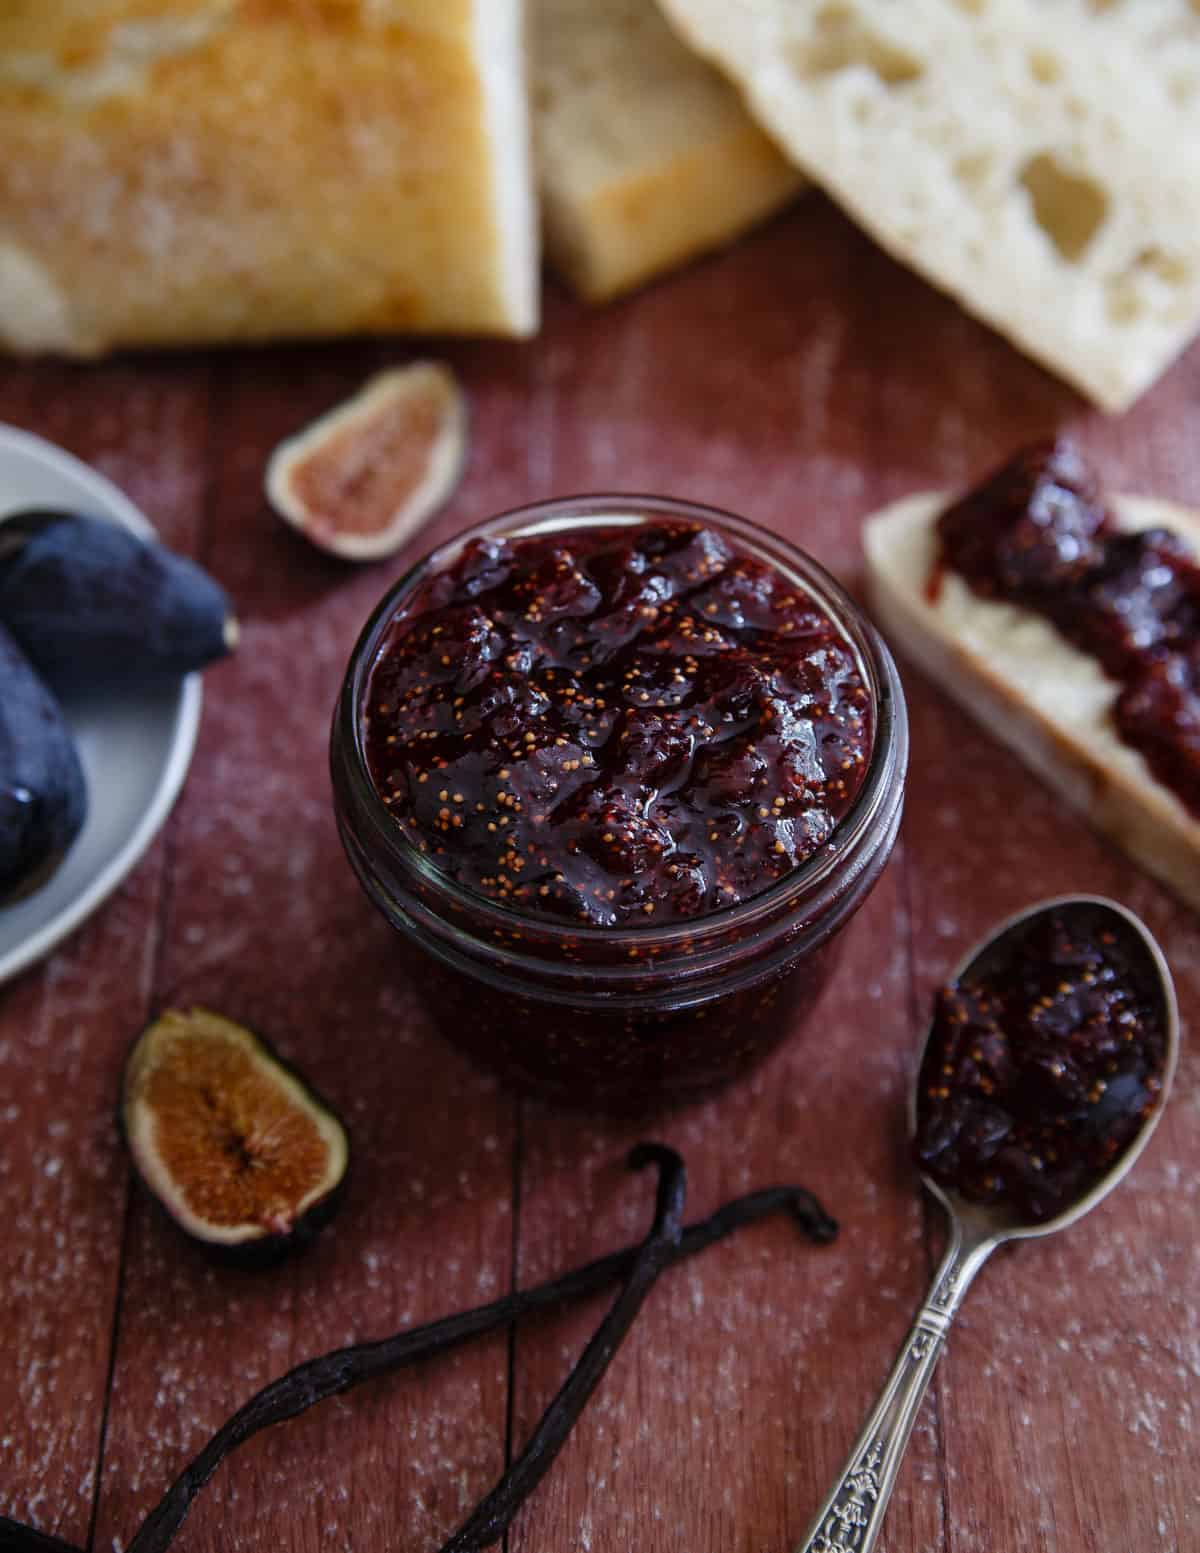 This fig preserve is infused with real vanilla bean for a sweet spread that has endless uses. Try slathering on bread or serving alongside a cheese tray.